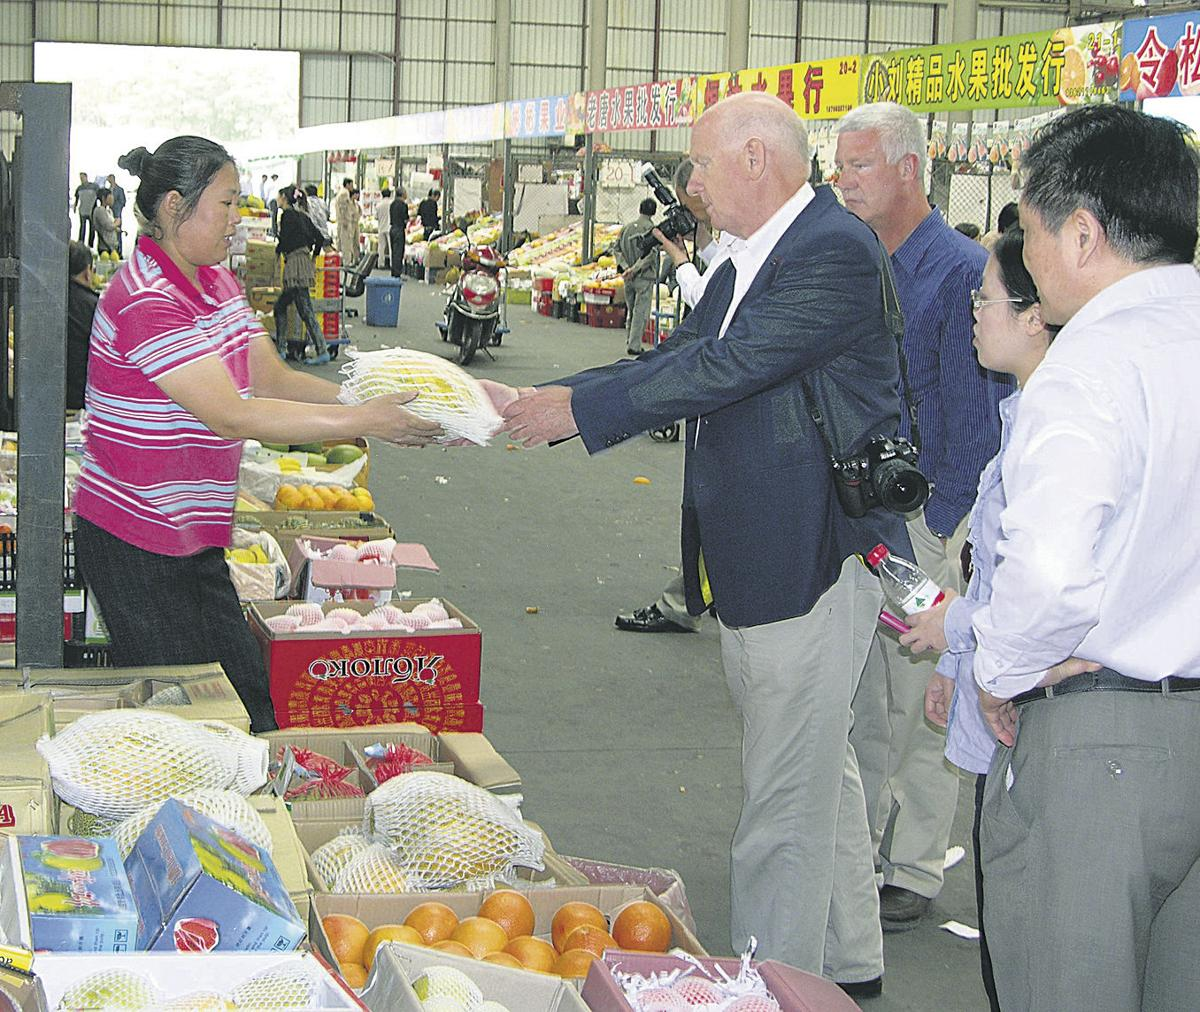 Trade Trip 2011: China hungry for US goods